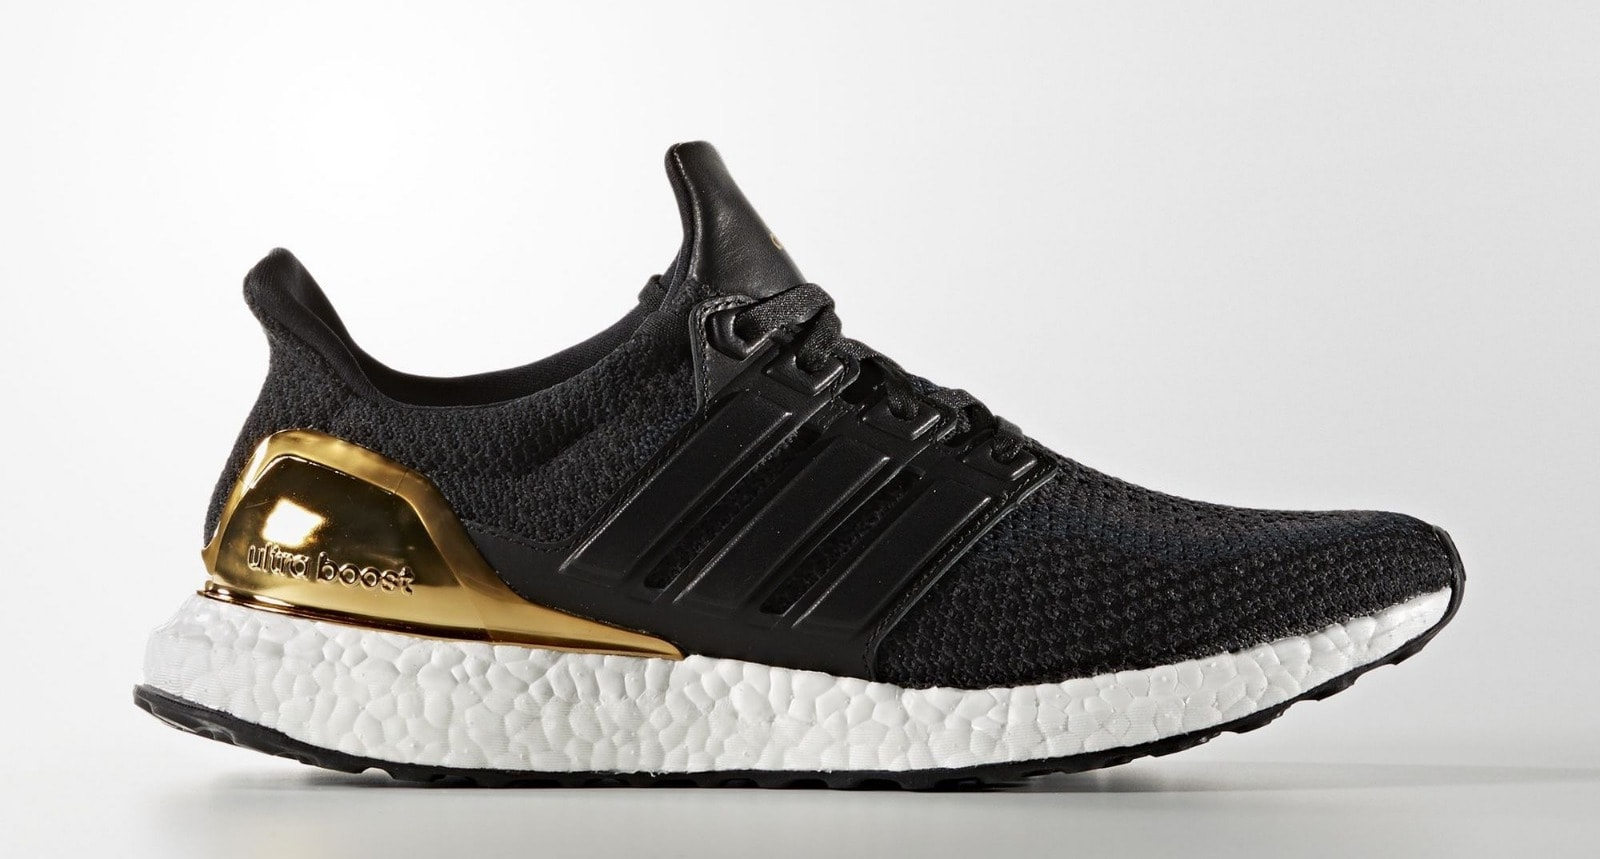 ac631a8712d5 adidas  recent string of Ultra Boost re-releases has been a blessing for  many Three Stripes collectors. However